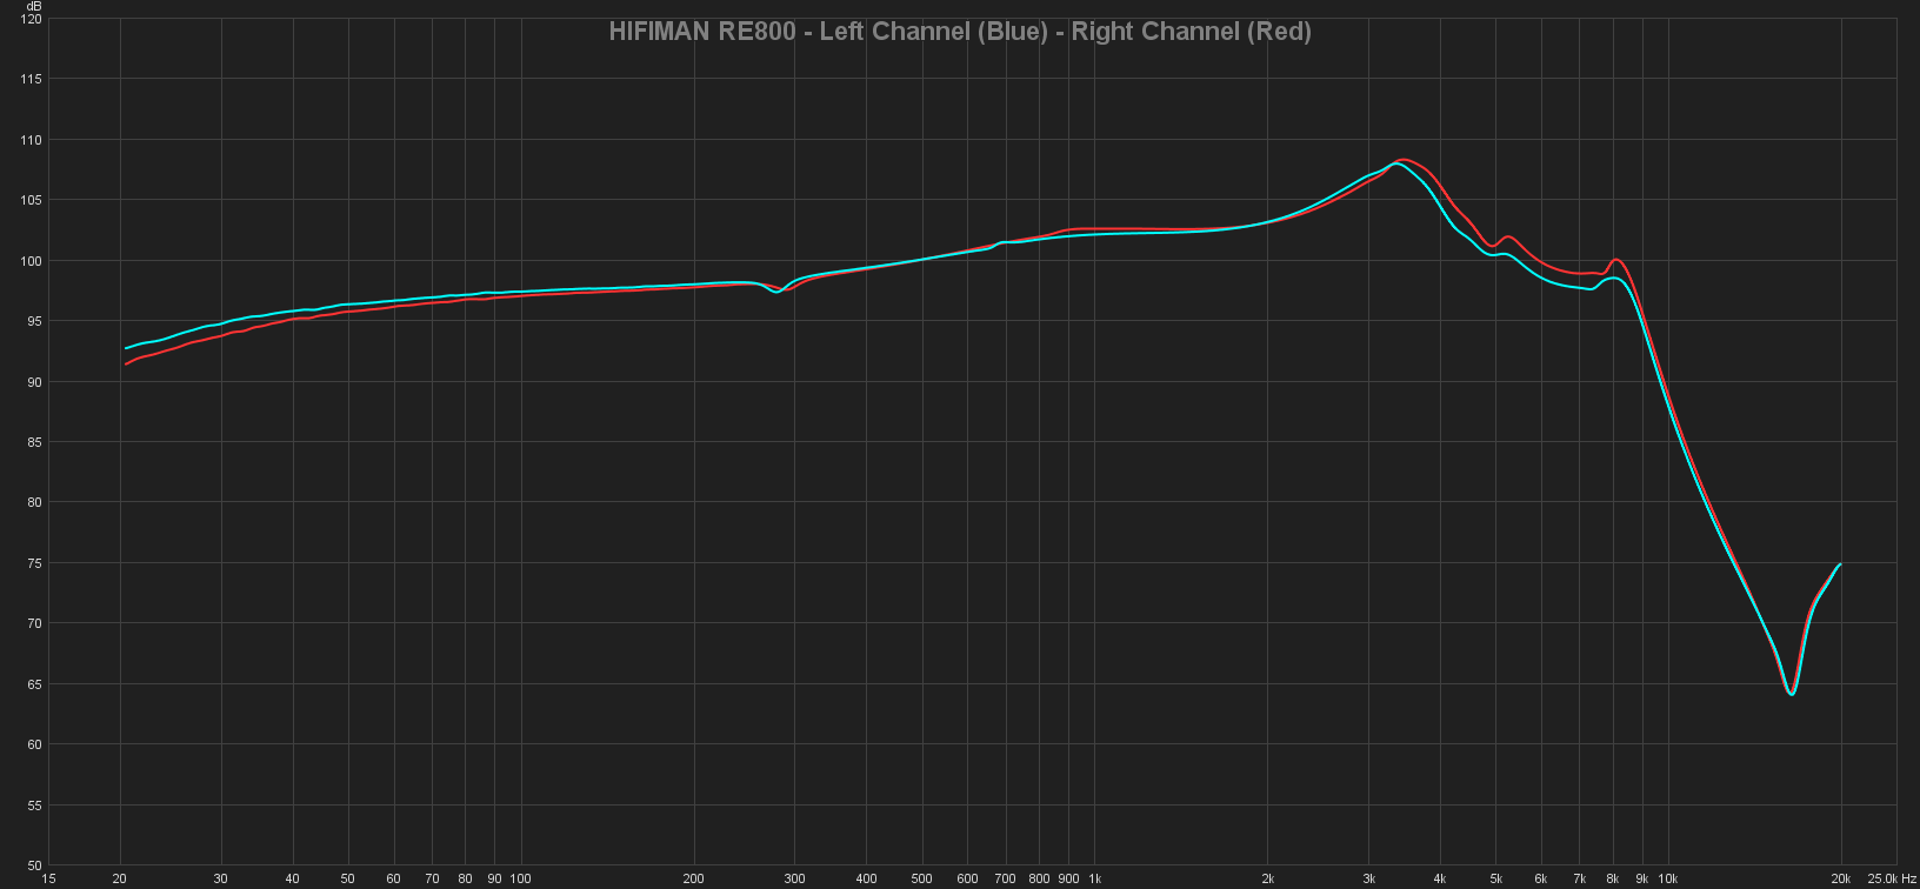 07 HIFIMAN RE800 - Left Channel (Blue) - Right Channel (Red).png